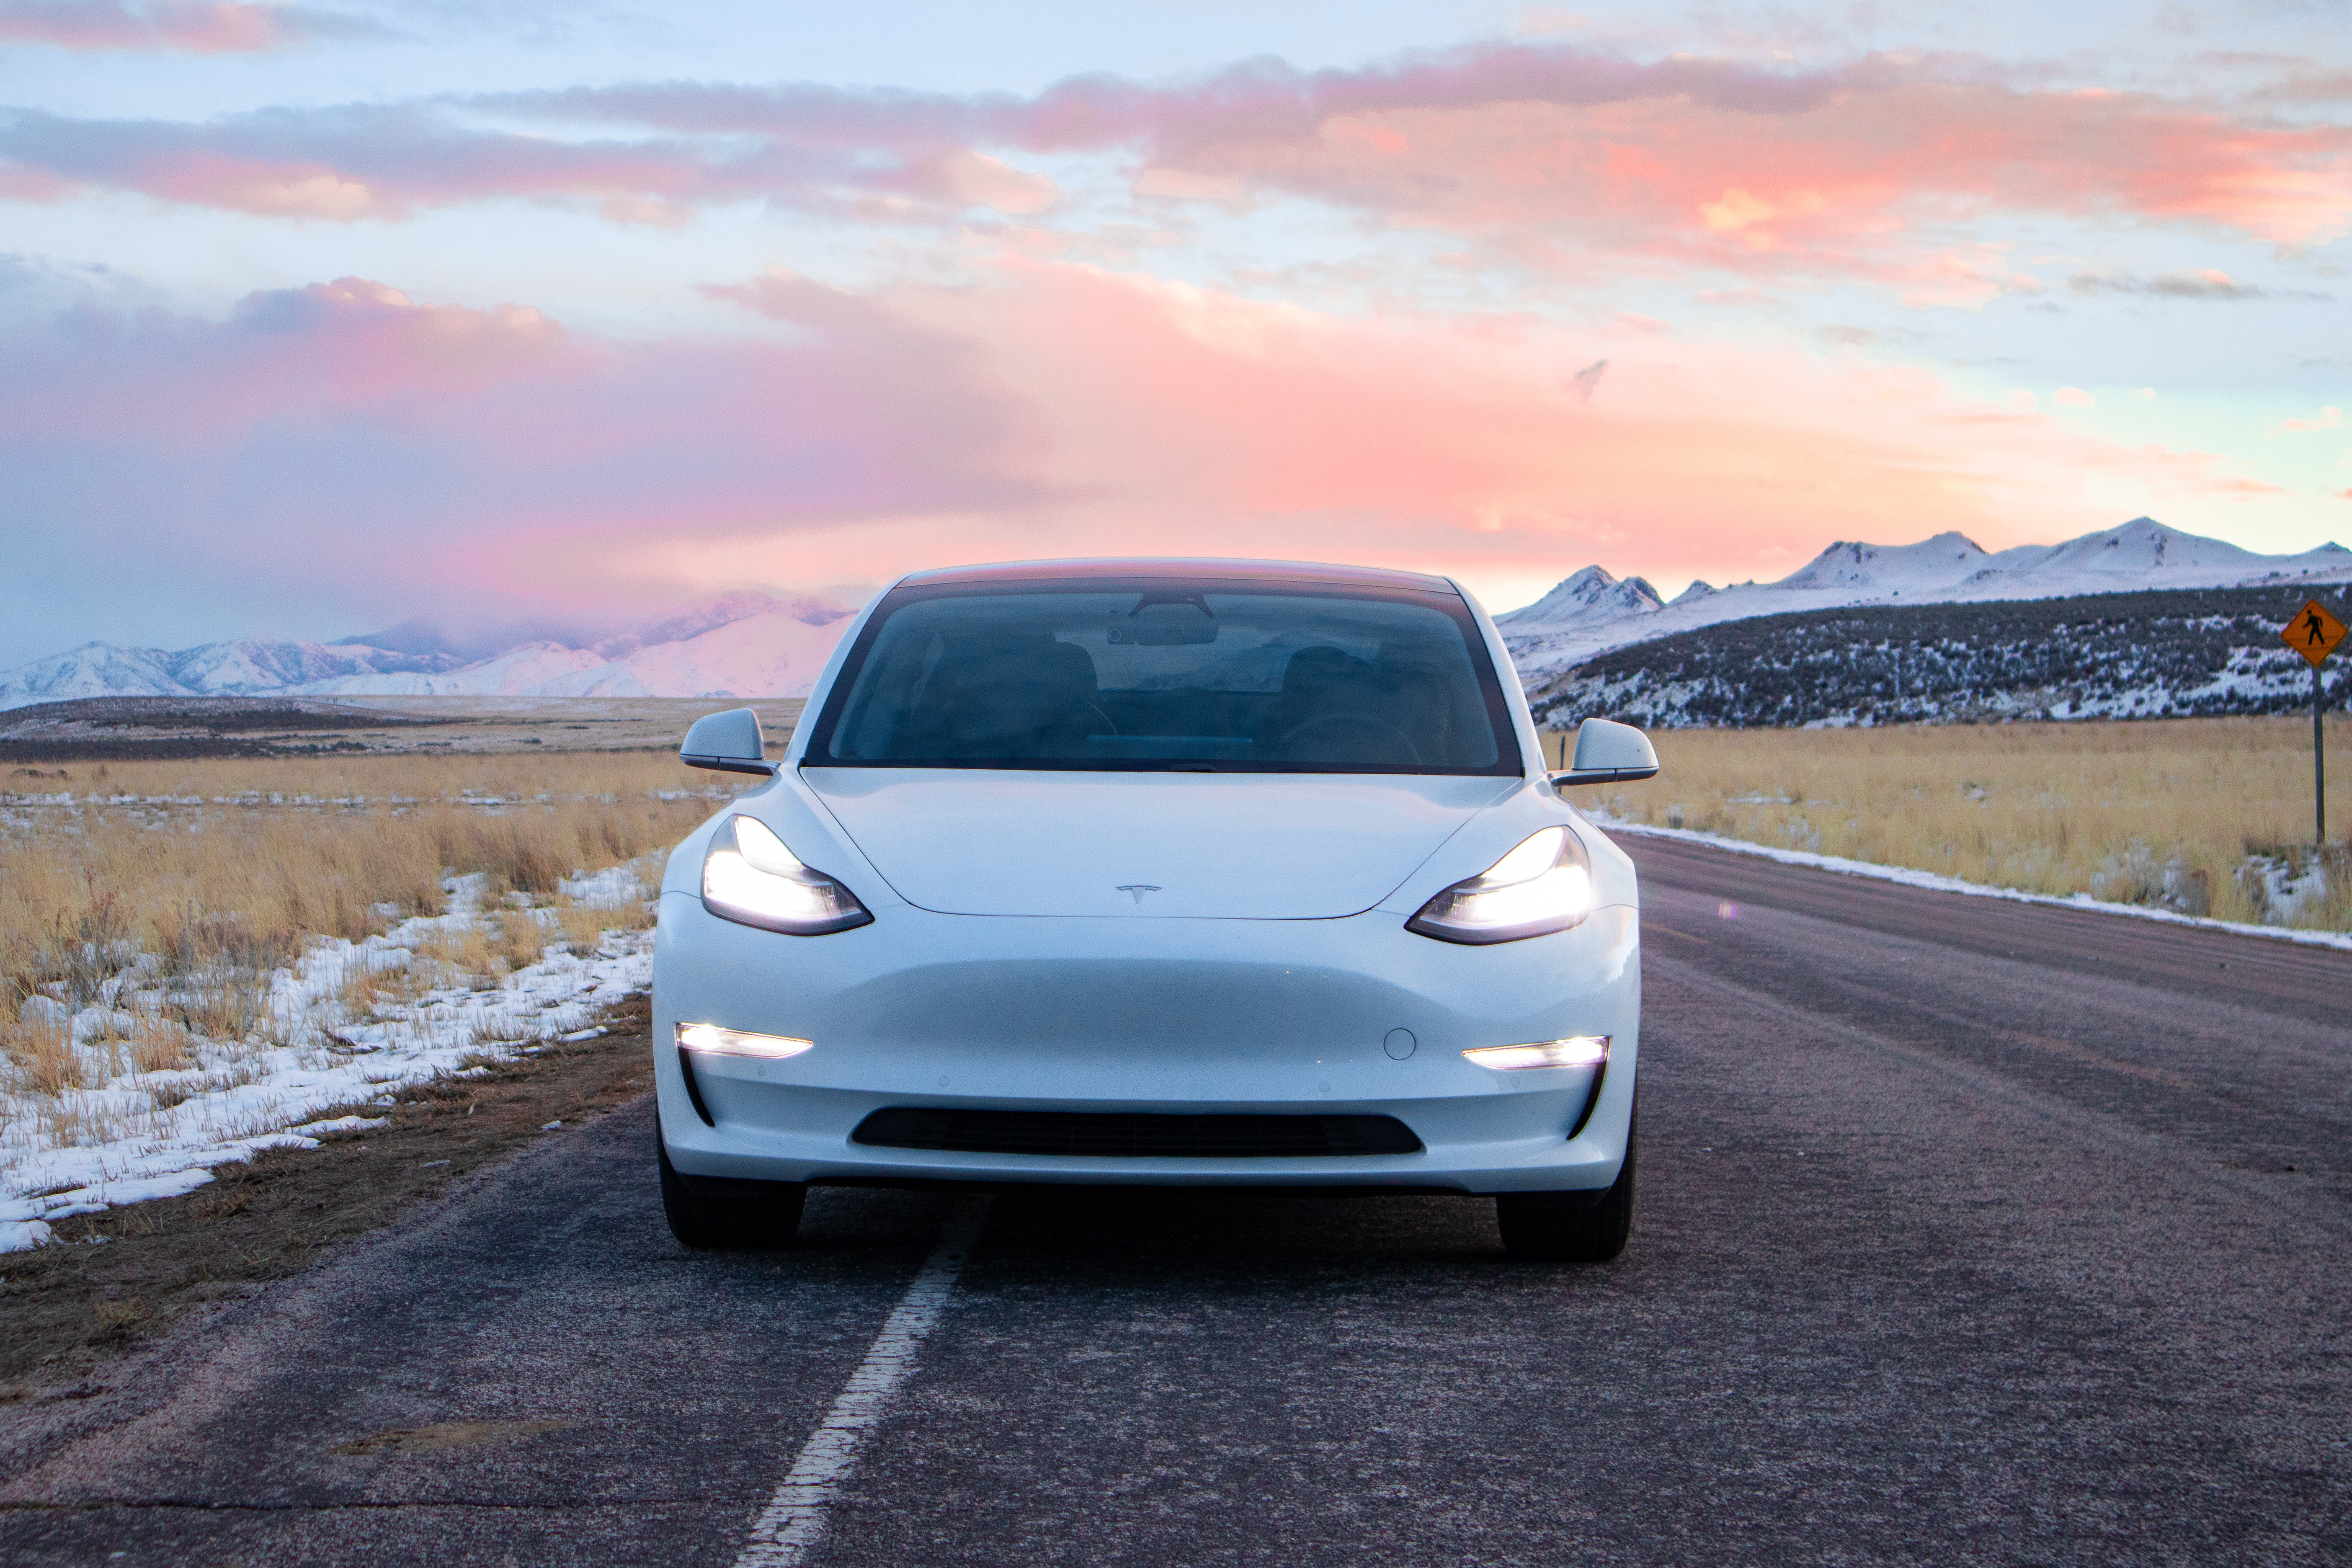 The $35,000 Tesla Model 3 Is Here: Could Elon Musk Launch a $25,000 EV?